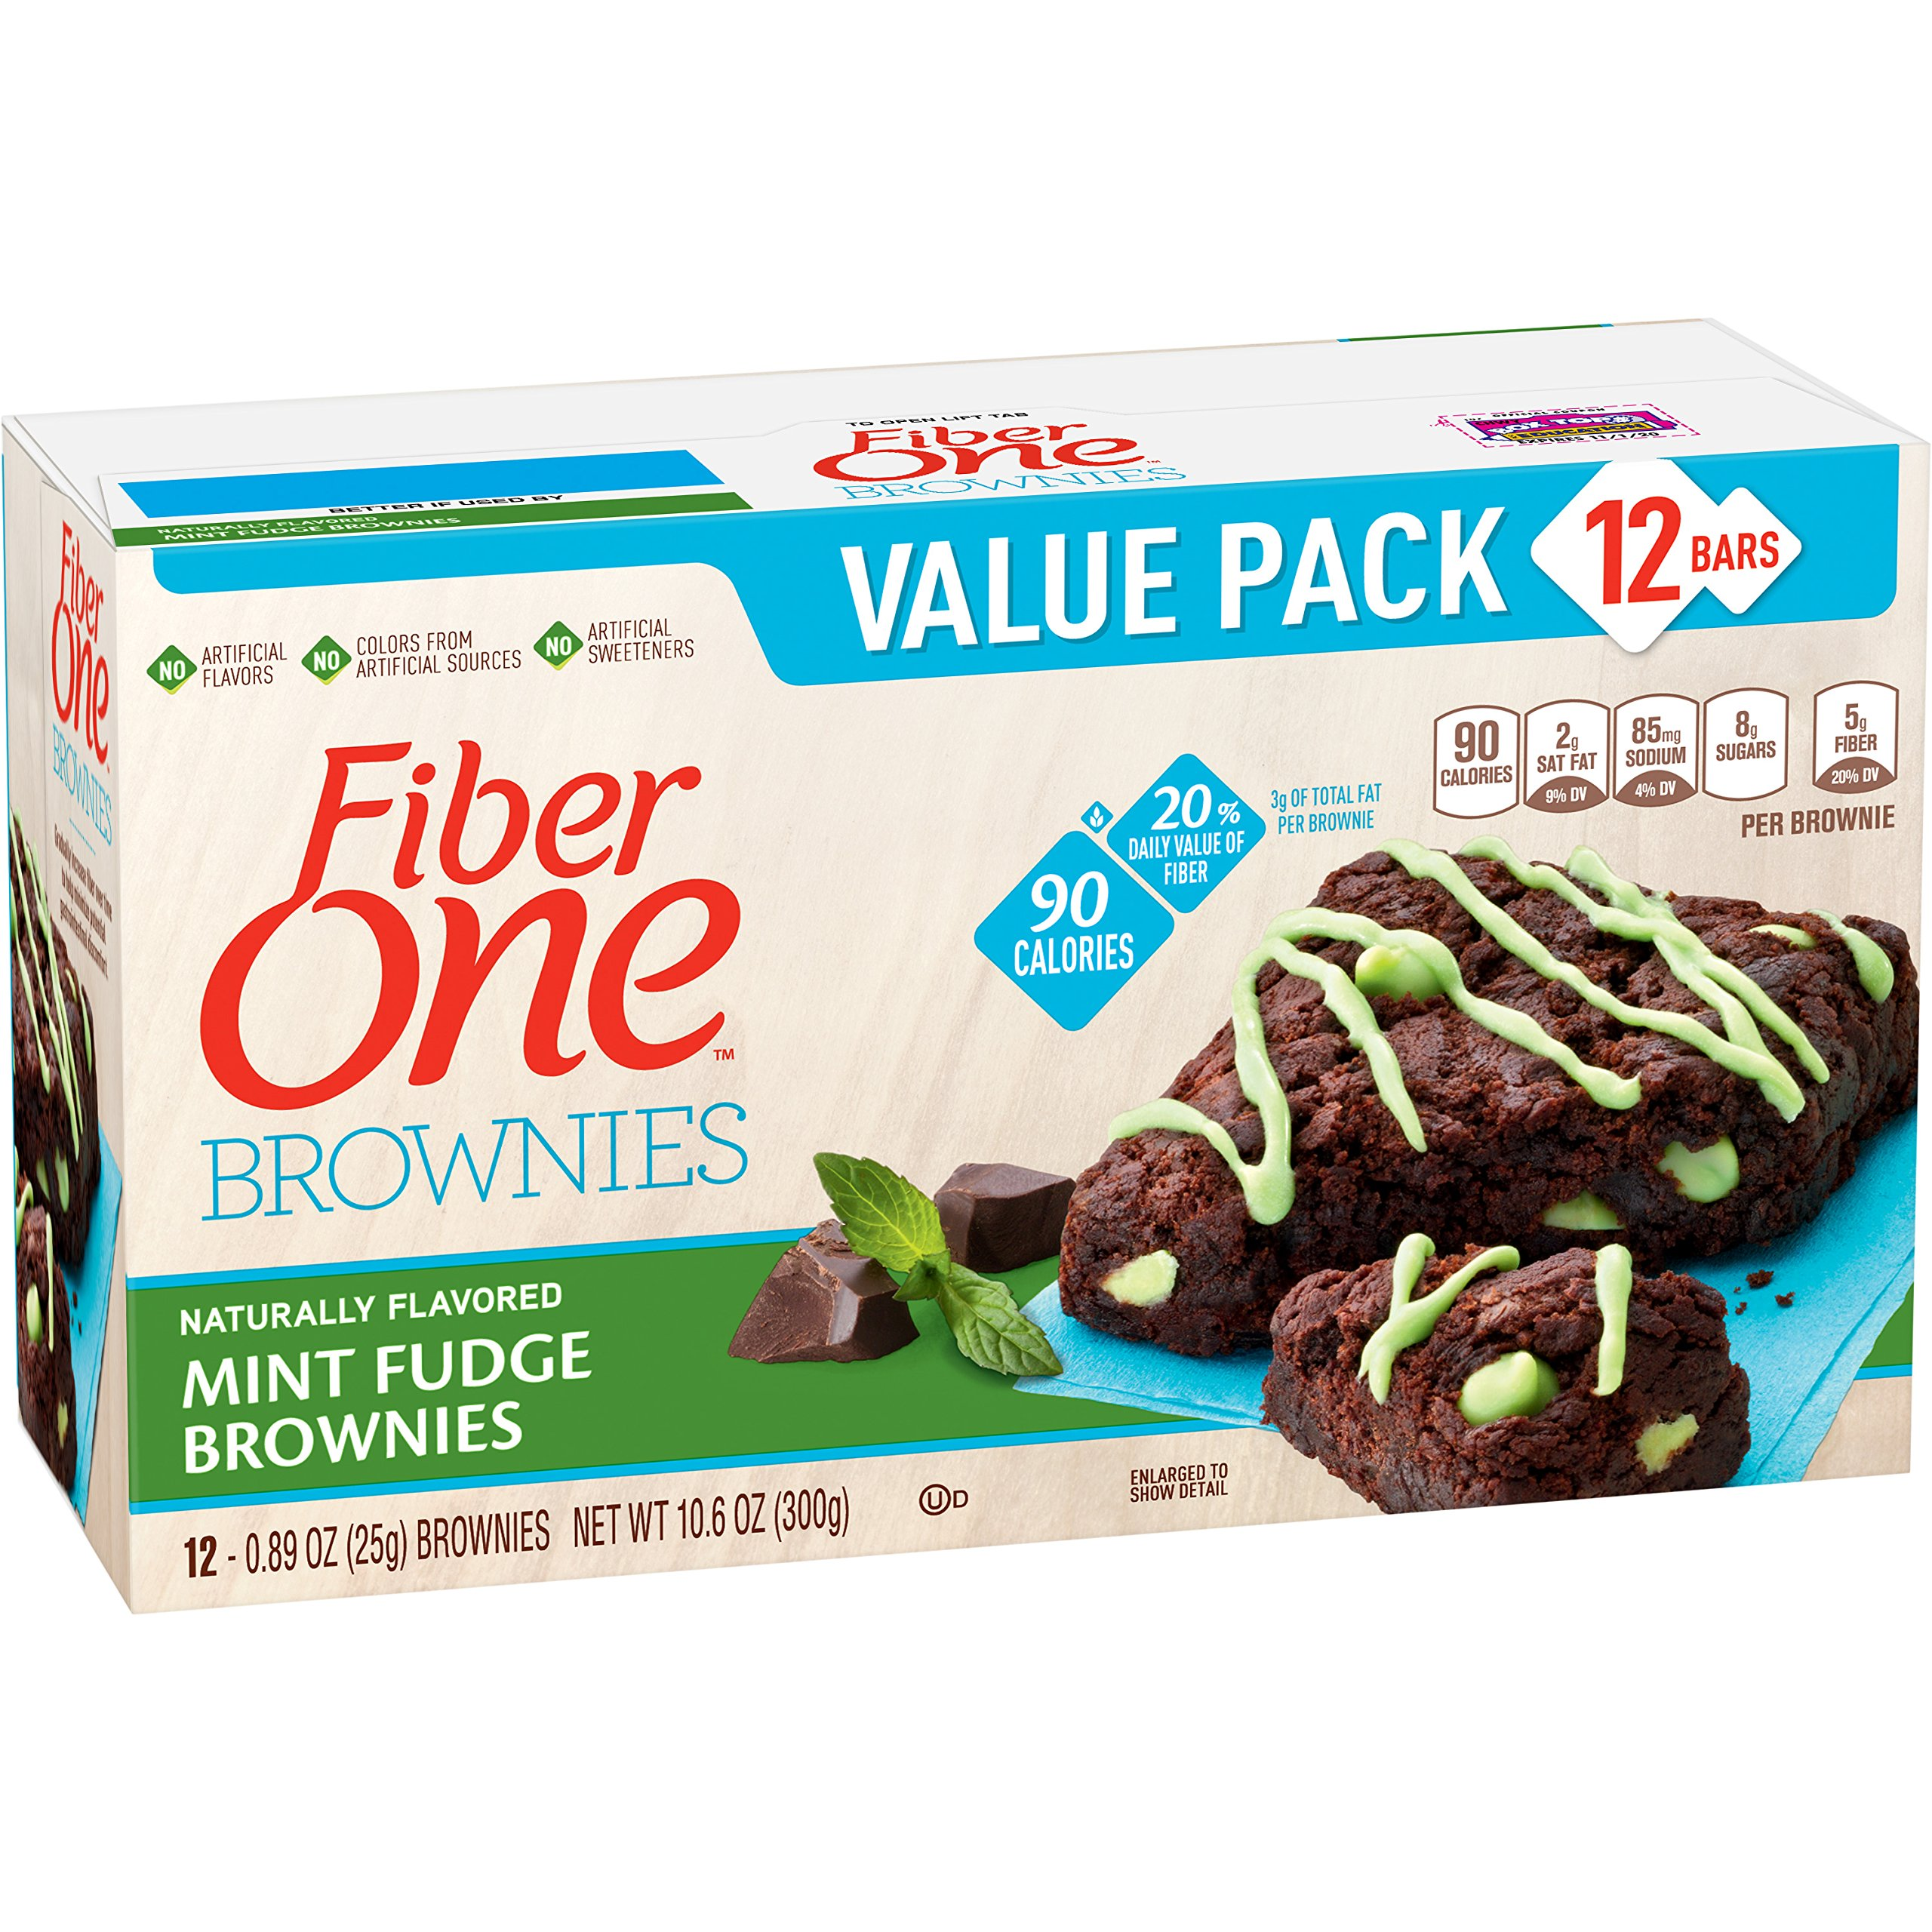 Fiber One Brownies, 90 Calorie Bar, Mint Fudge Brownie, 12 Fiber Bars, 10.6 oz (Value Pack)